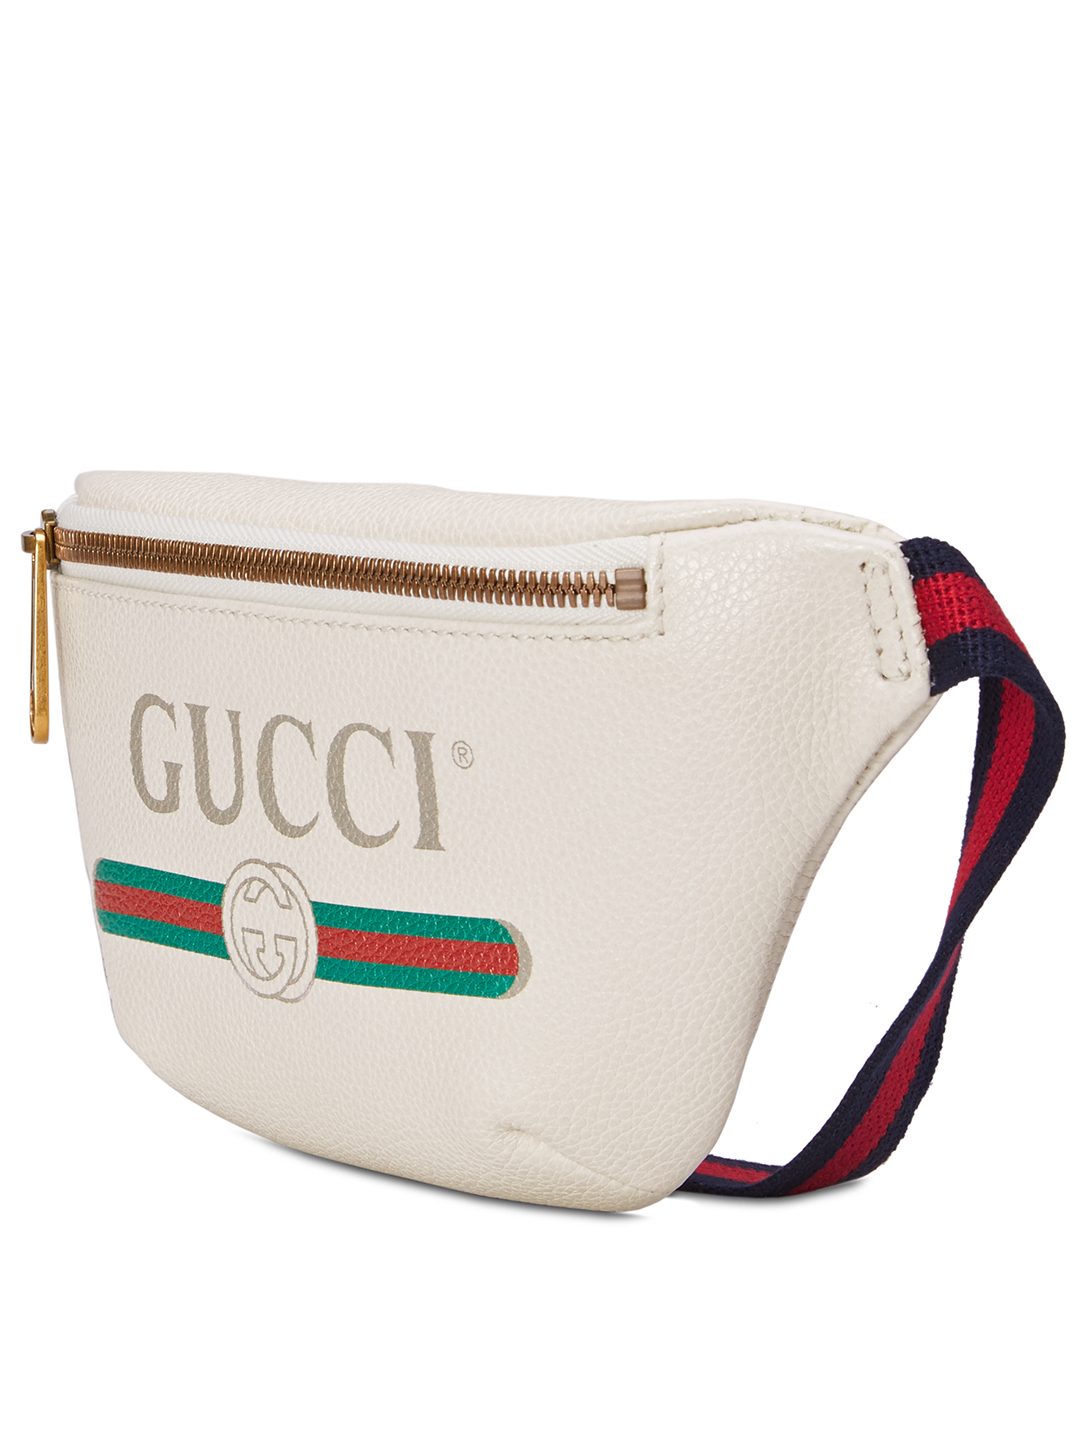 GUCCI Small Leather Belt Bag With Logo Print Women's White